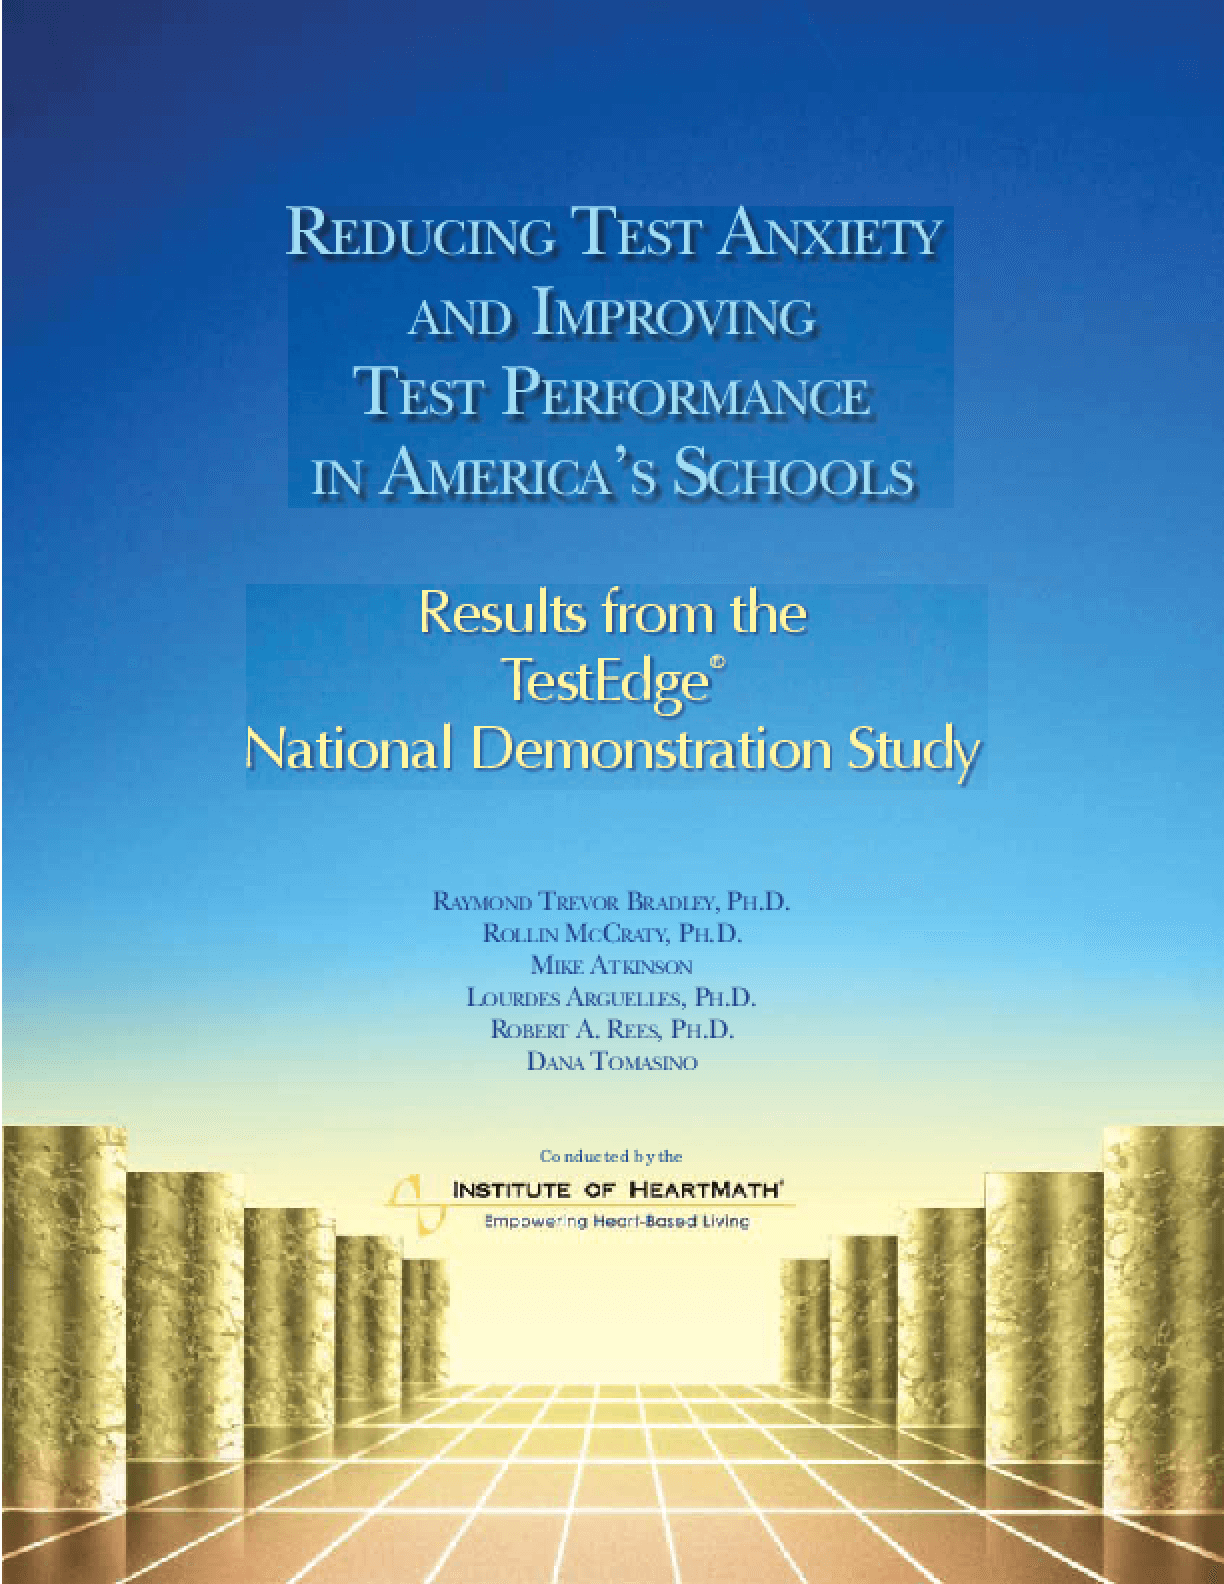 Reducing Test Anxiety and Improving Test Performance in American's Schools: Summary of Results From The TestEdge National Demonstration Study